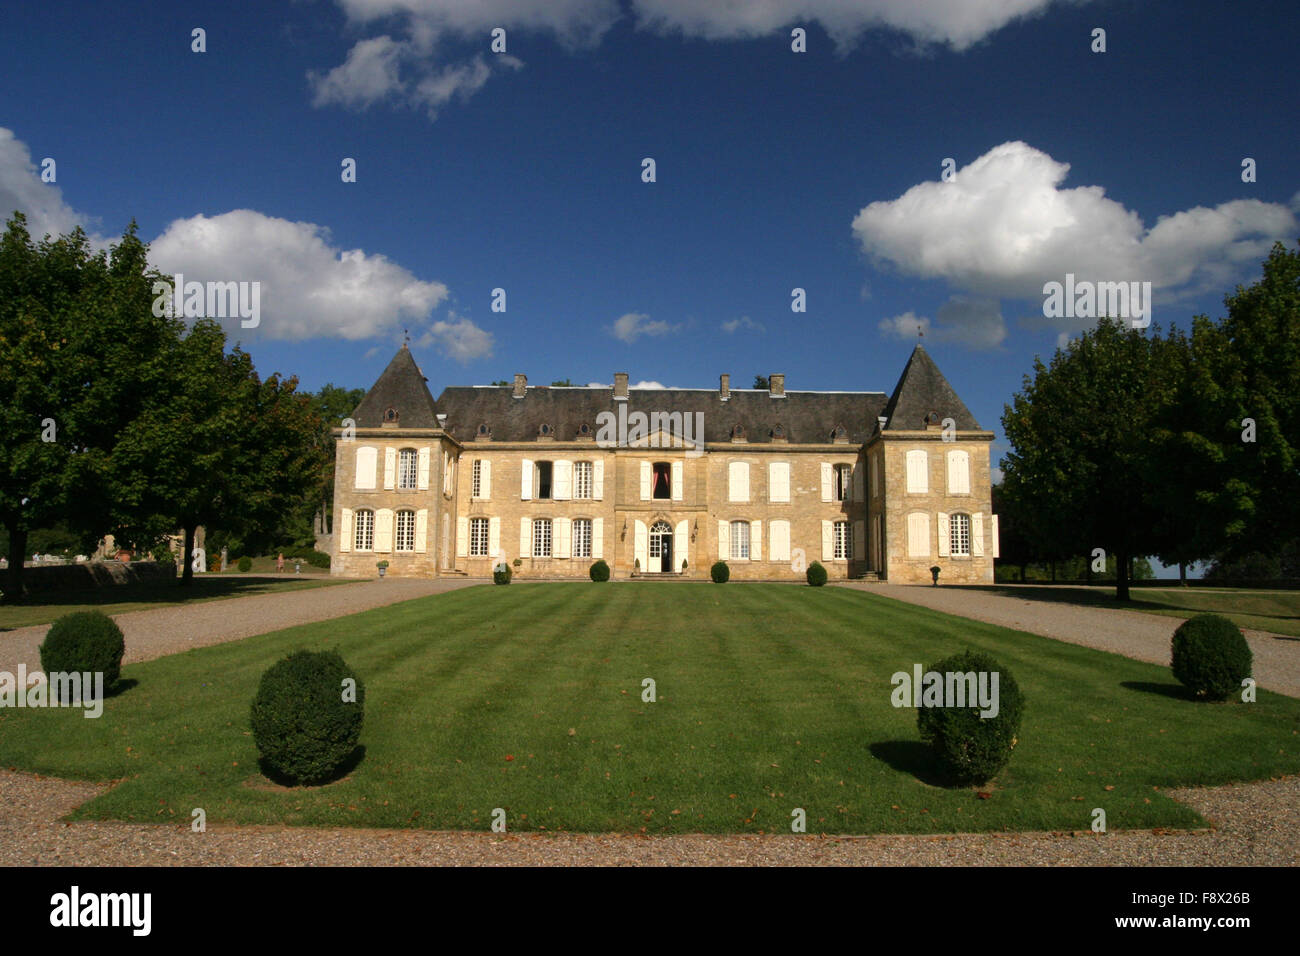 Chateau Dordogne France in summer sun with blue clouds - Stock Image